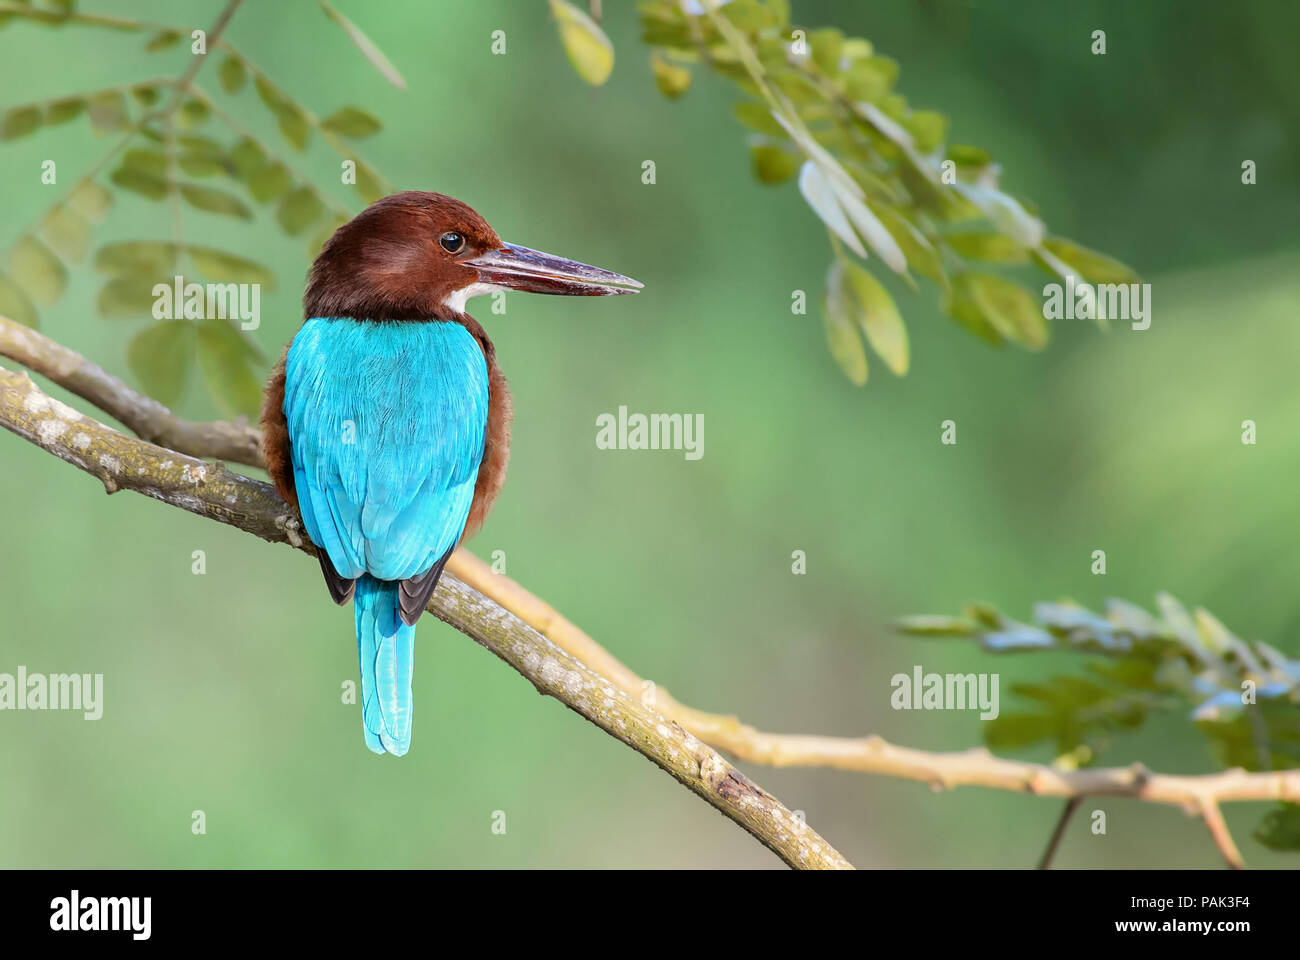 White-throated Kingfisher - Halcyon smyrnensis, Sri Lanka. Sitting on the branch near the water. - Stock Image